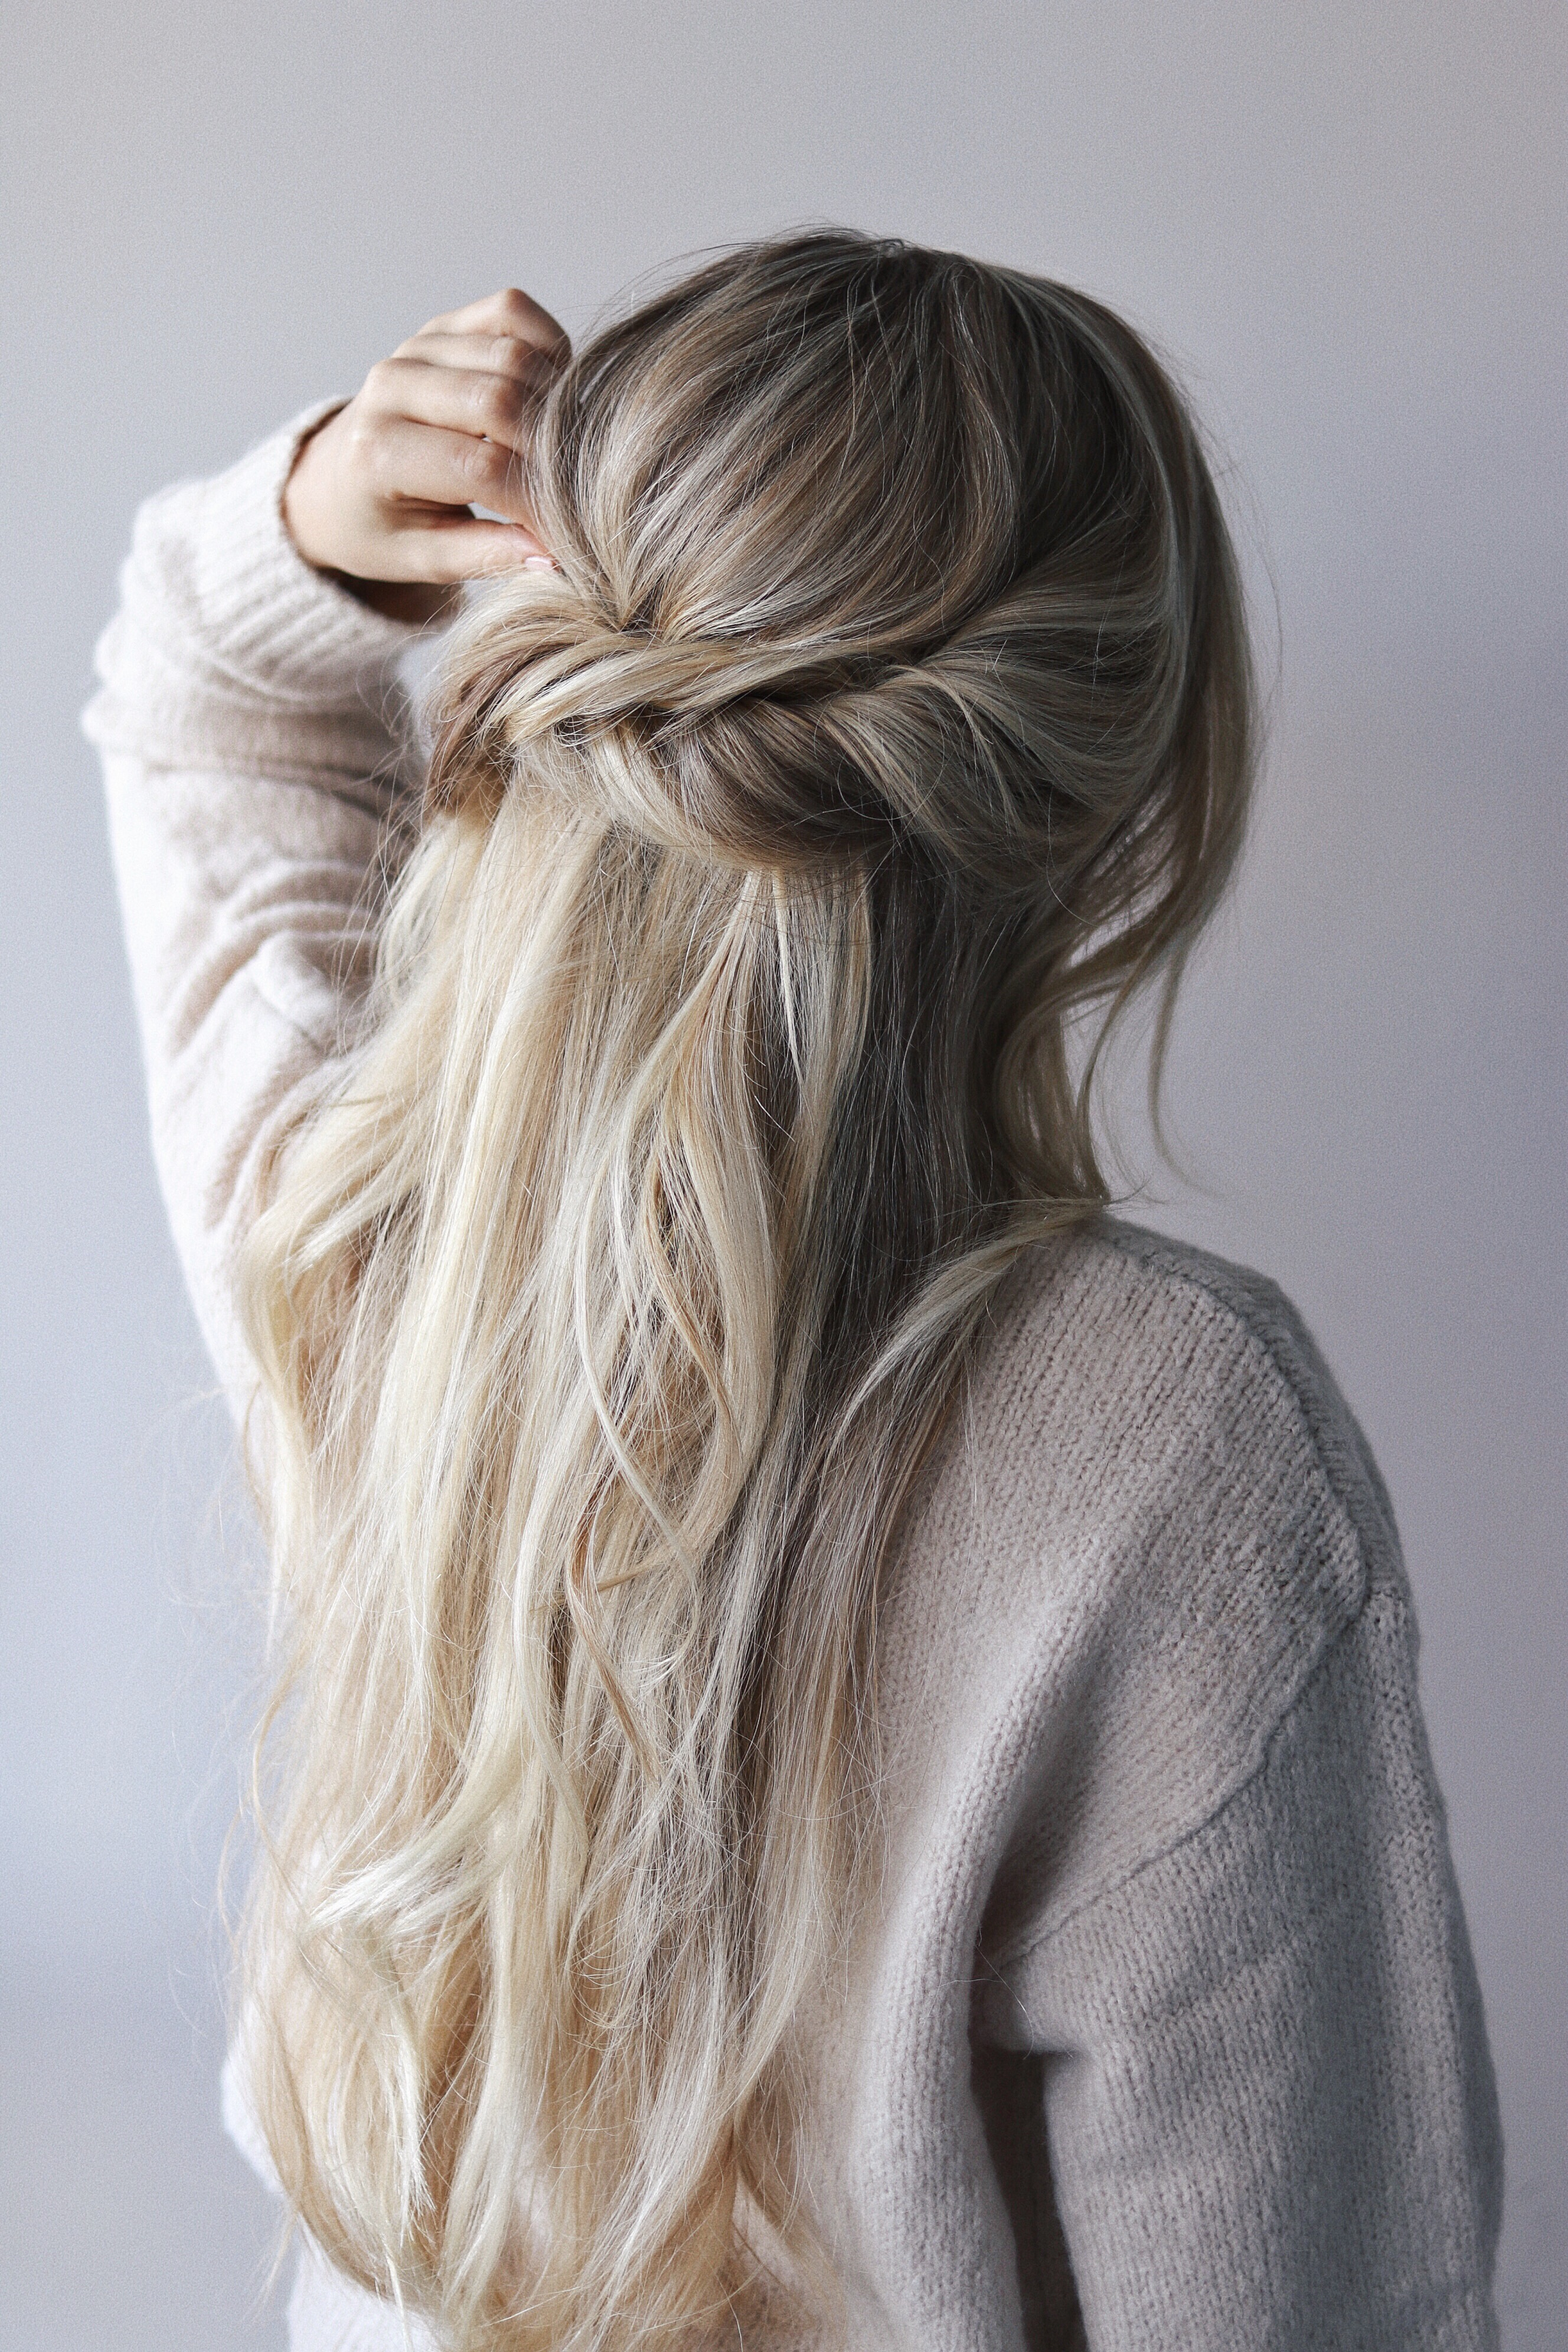 Easy Hairstyles, Fall Hairstyles | www.alexgaboury.com